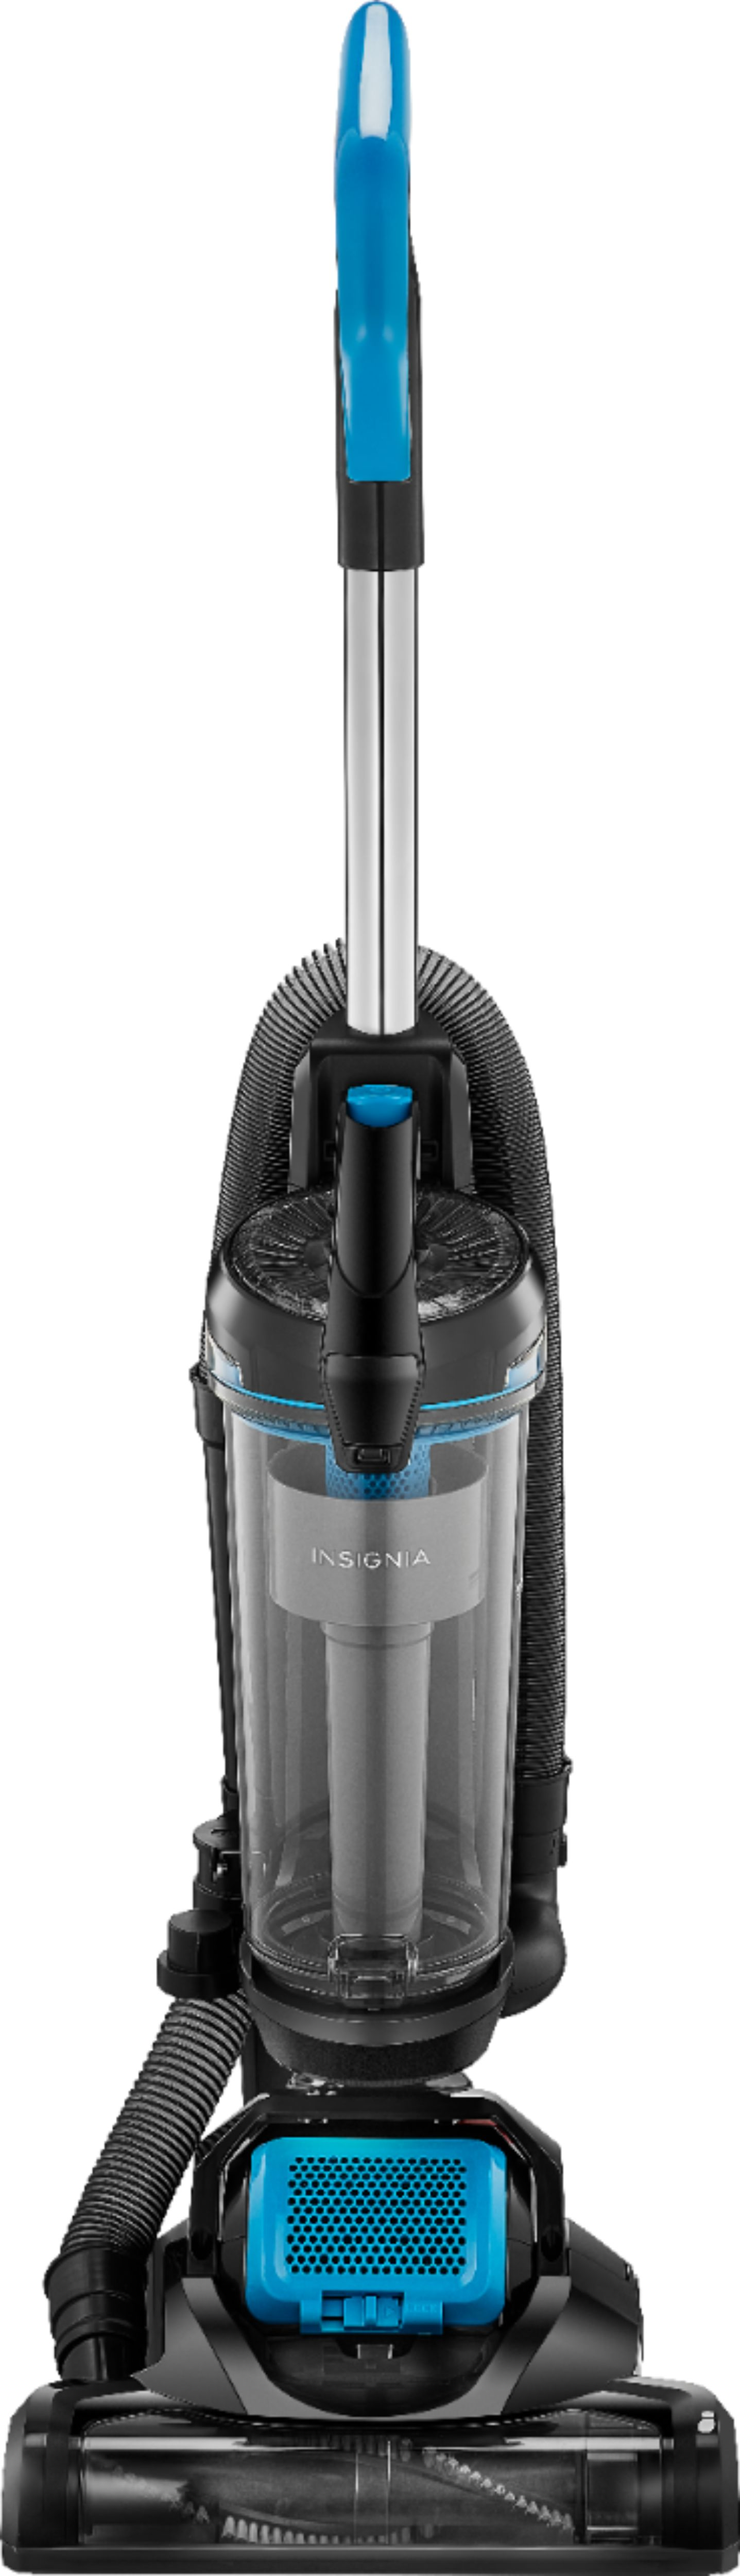 Upright Vacuums - Last Day To Save 15% Sitewide                                         Ad                                                                                                                 Viewing ads is privacy protected by DuckDuckGo. Ad clicks are managed by Microsoft's ad network (more info).